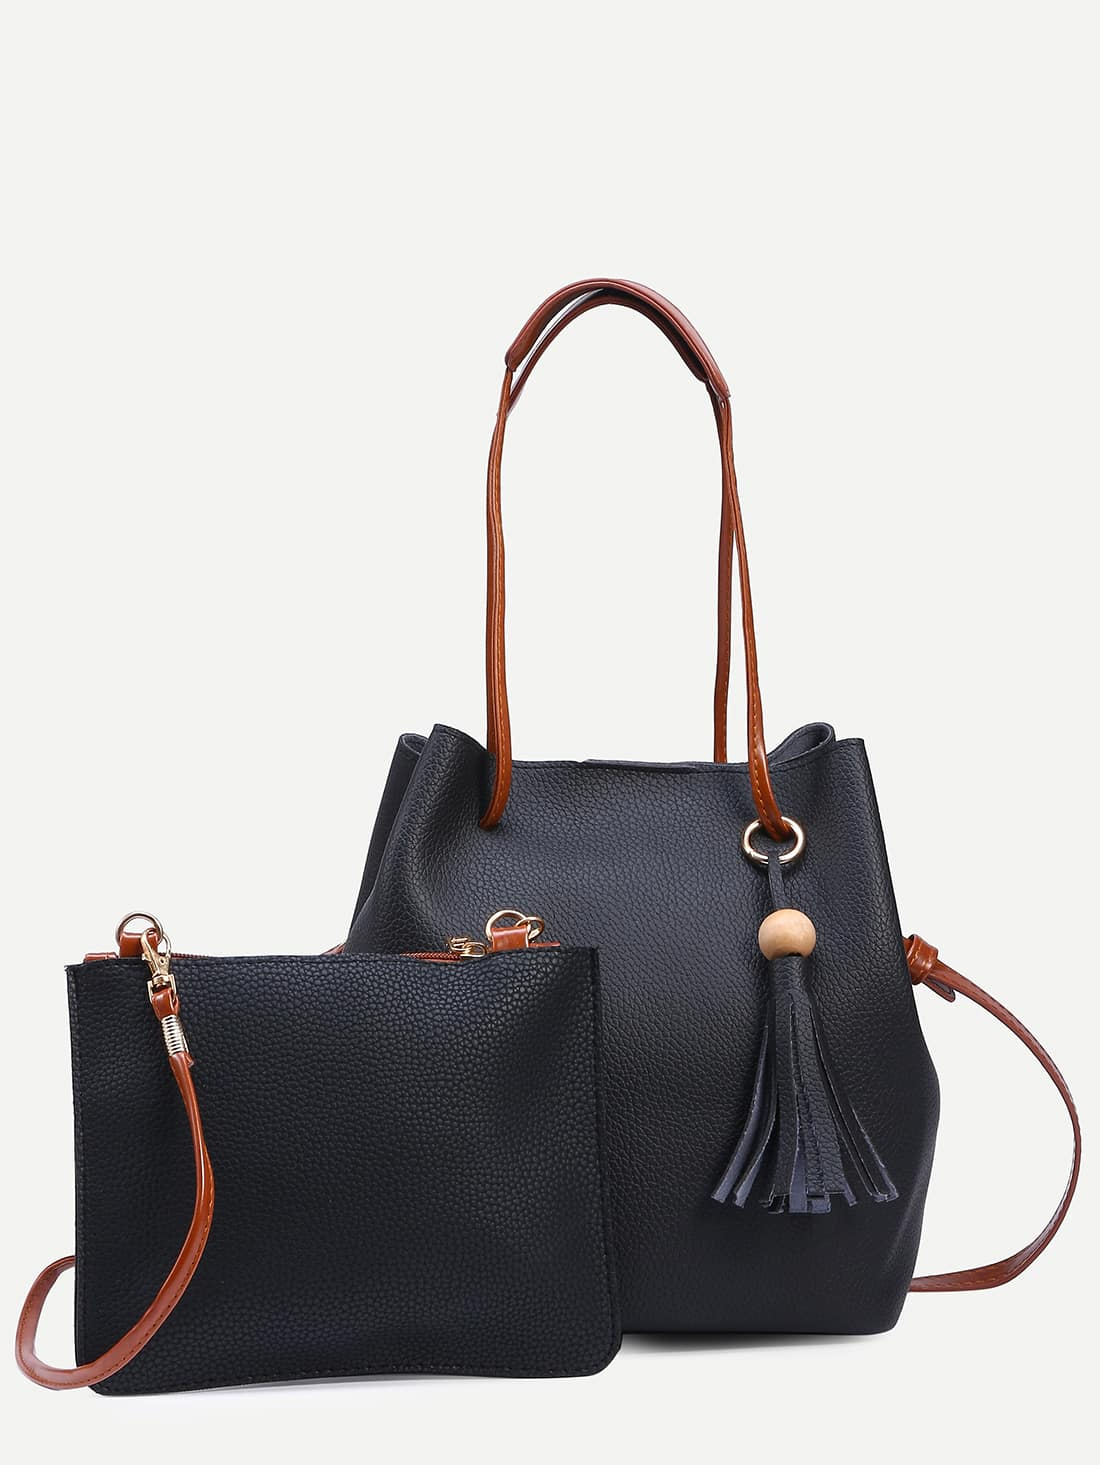 Black Tassel Trim Bucket Bag With Crossbody Bag